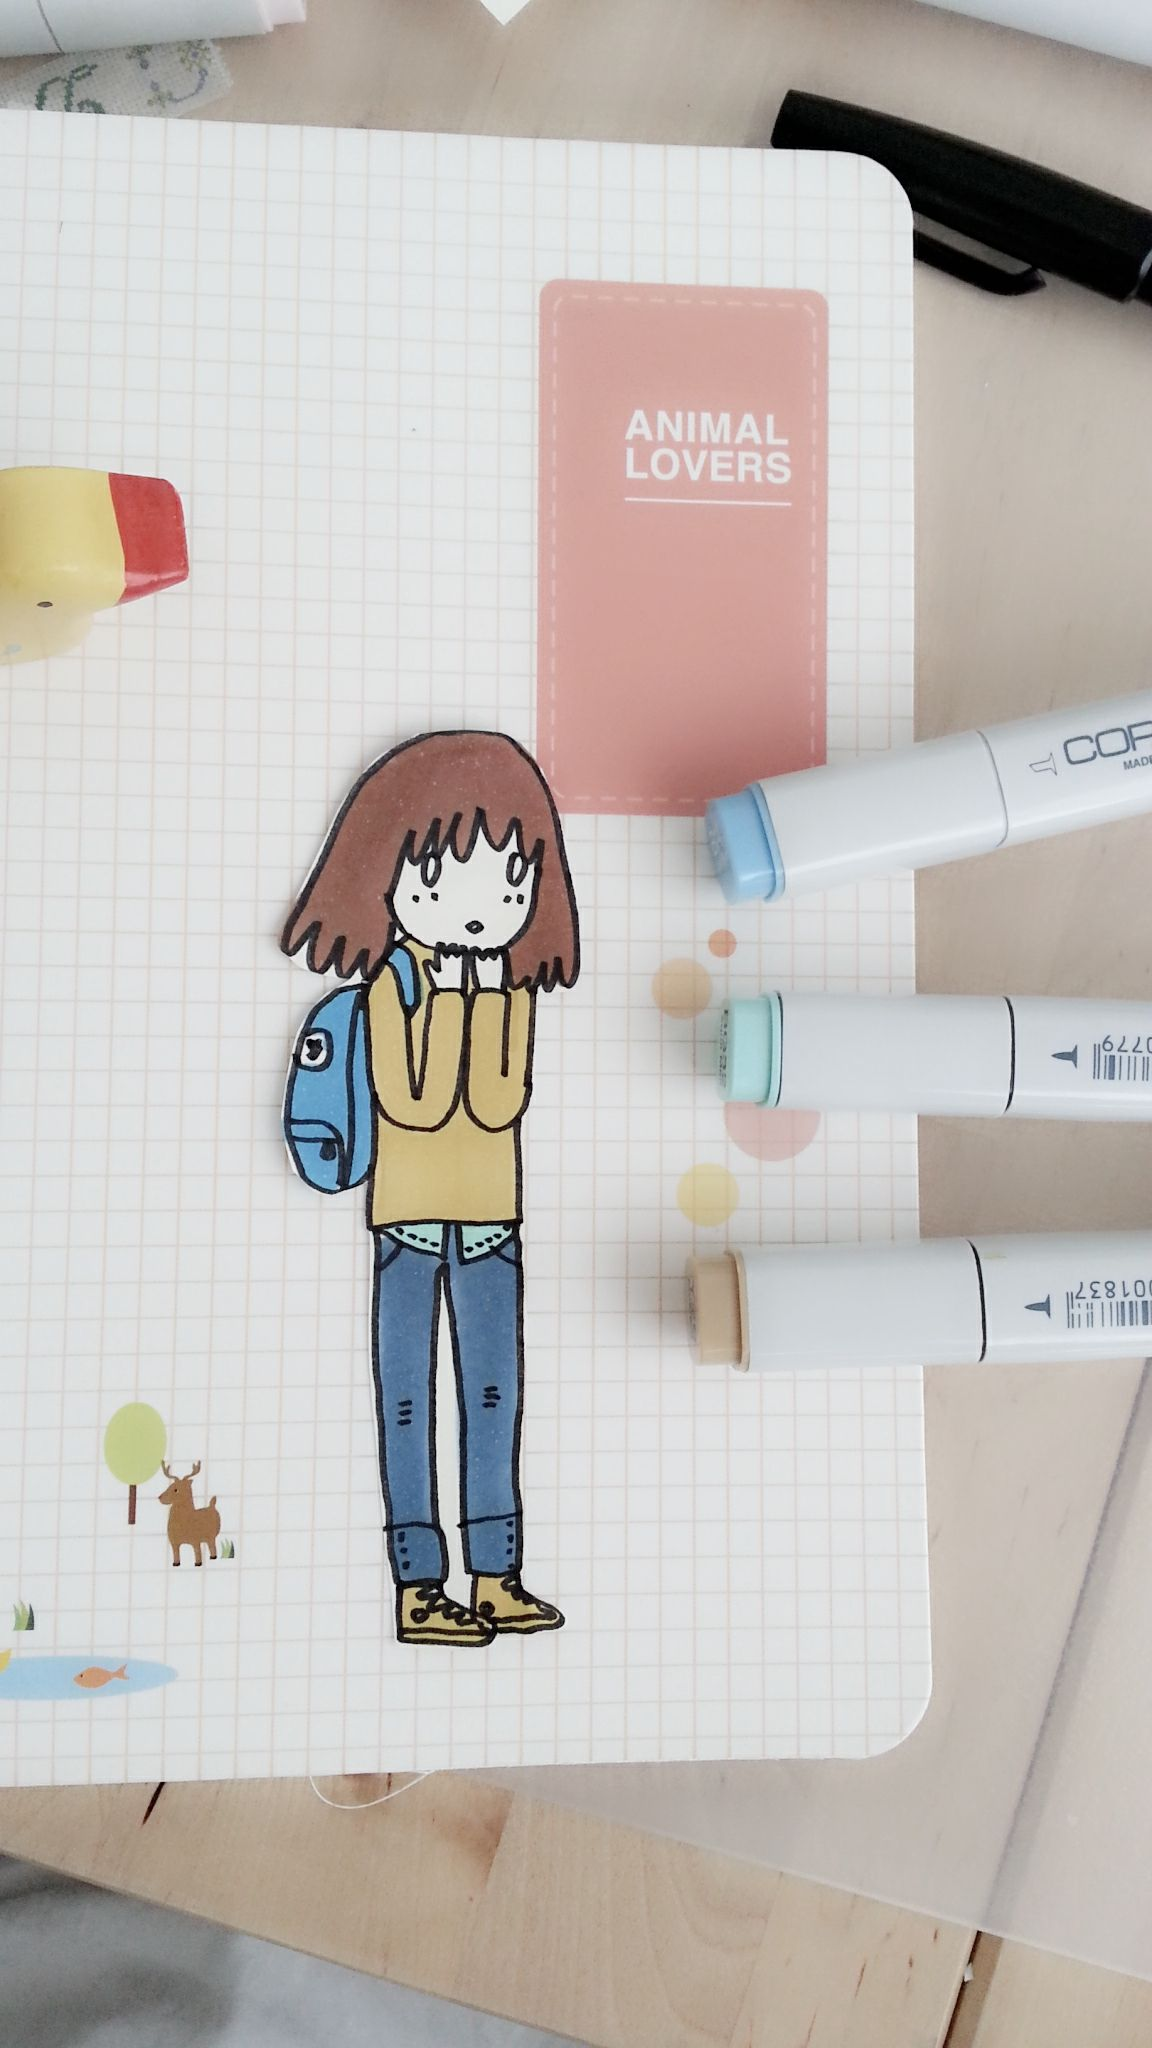 Copic Marker Copic Marker Drawings Markers Drawing Ideas Copic